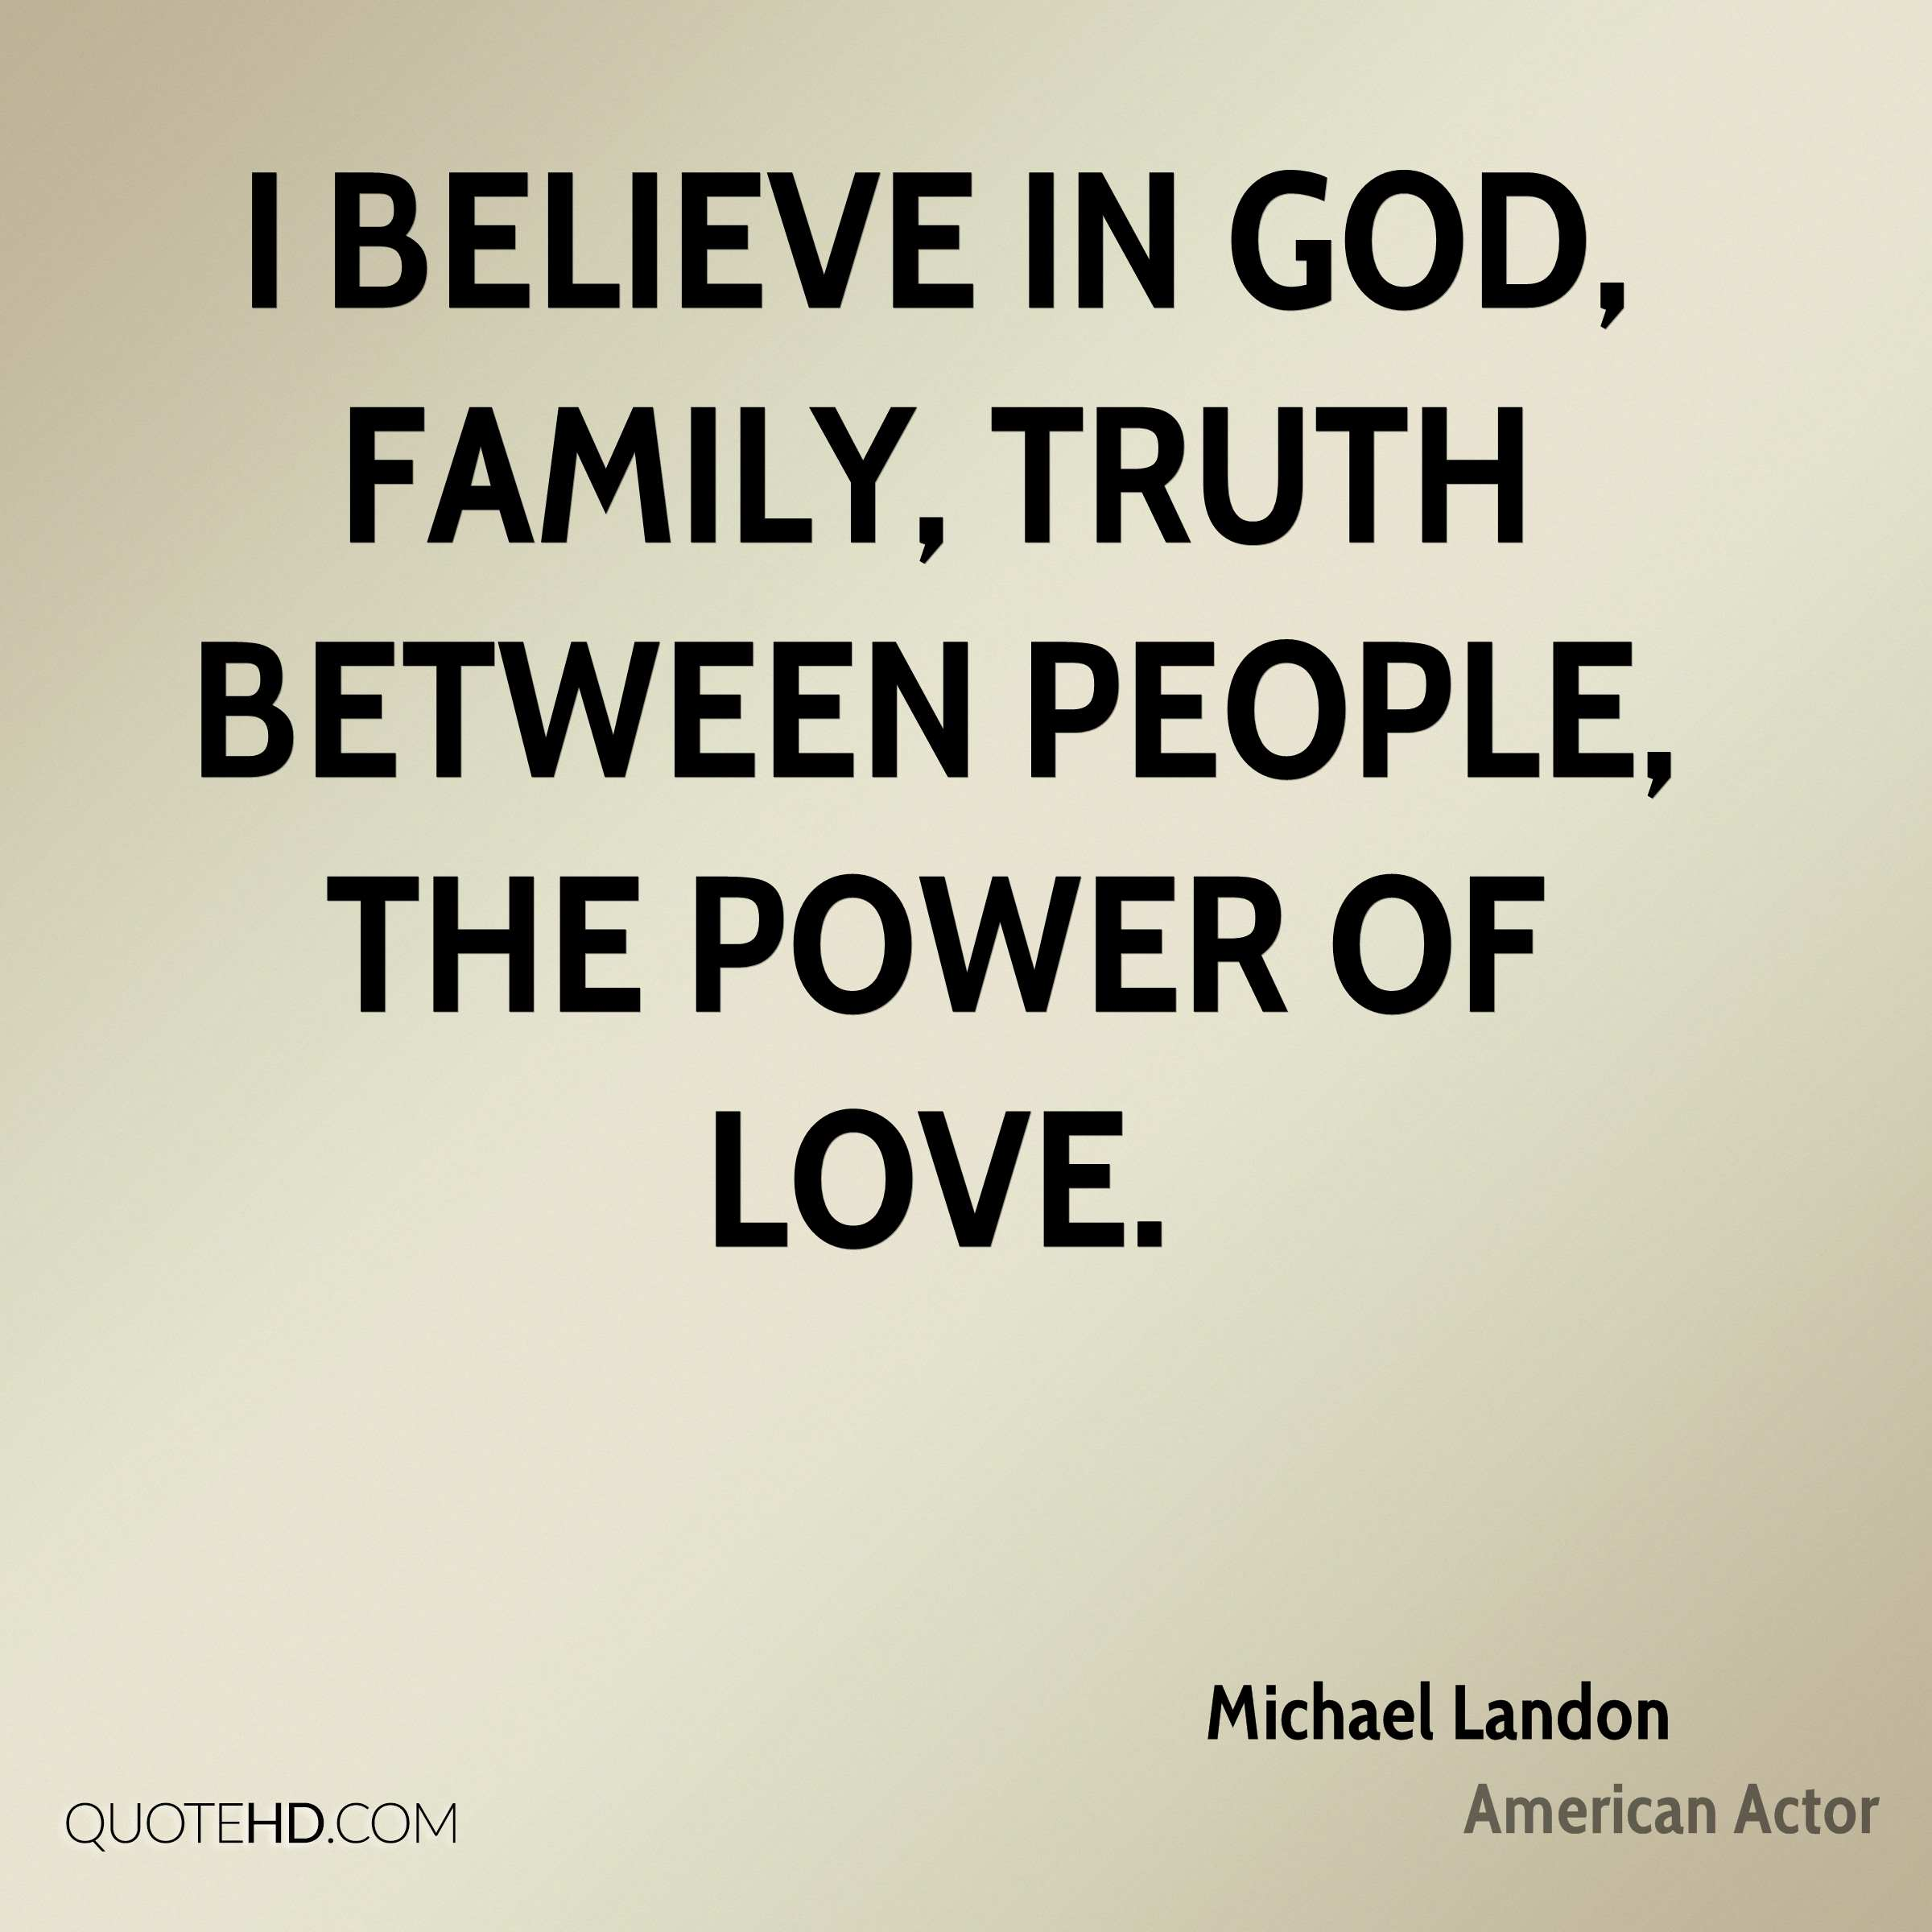 Michael Landon Quotes | QuoteHD